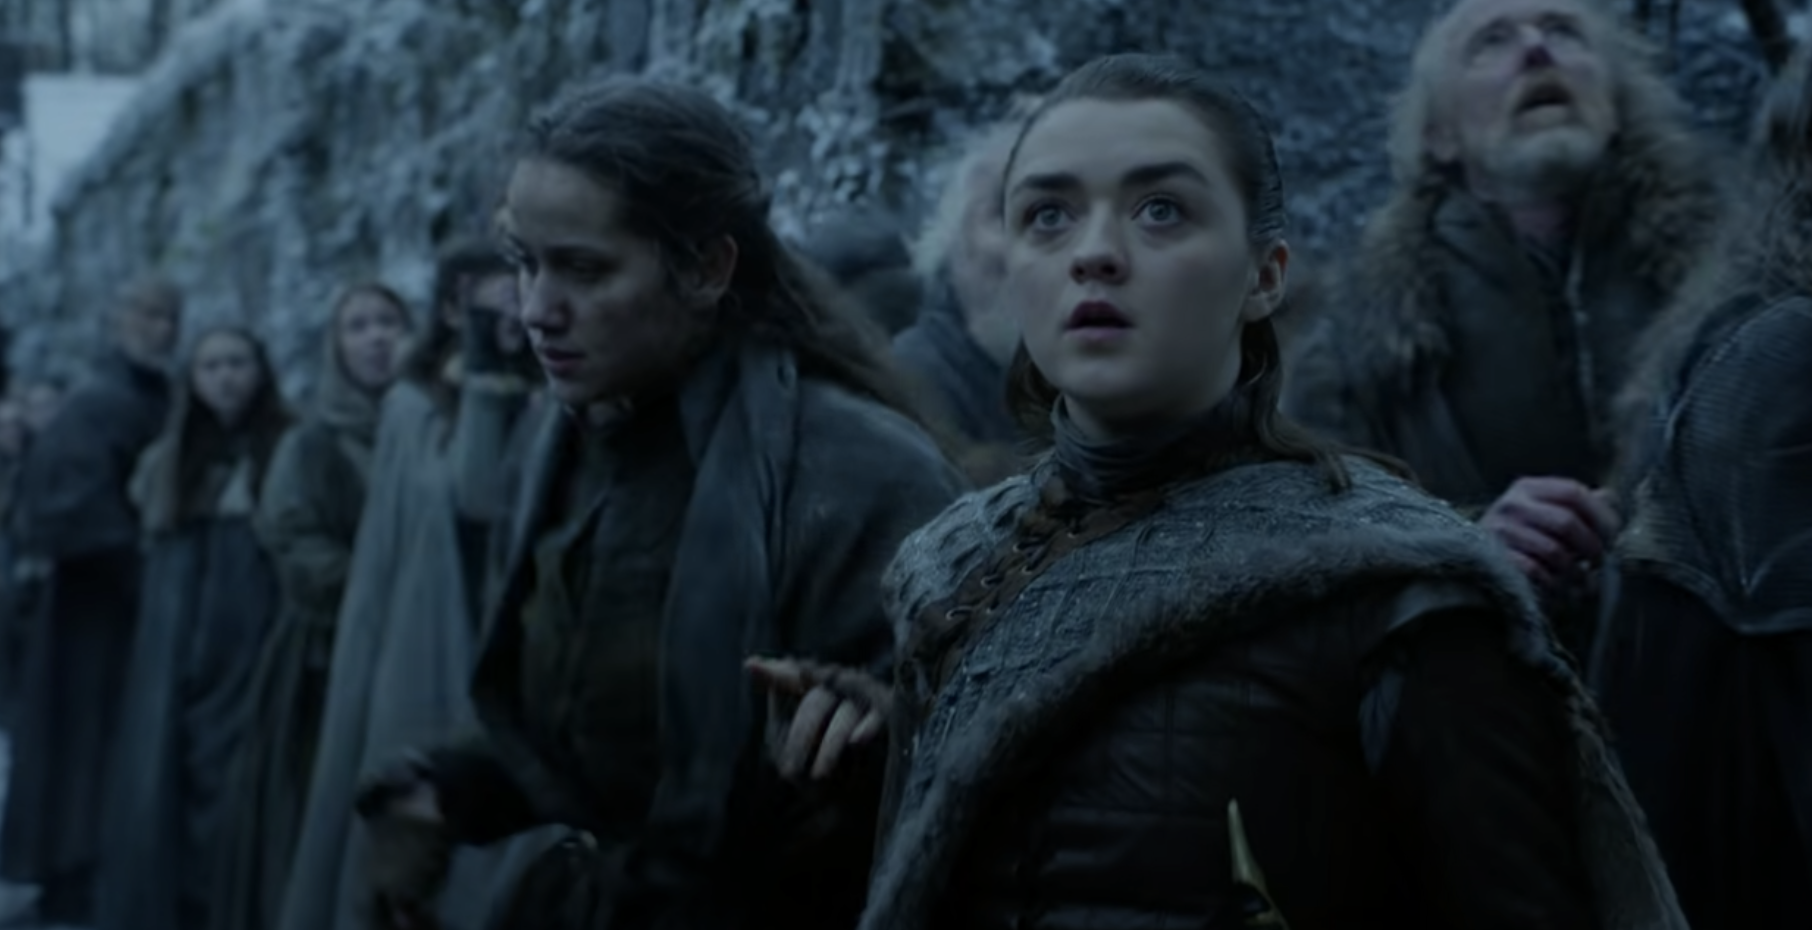 'Game of Thrones' Spinoff 'House of the Dragon' is Underway